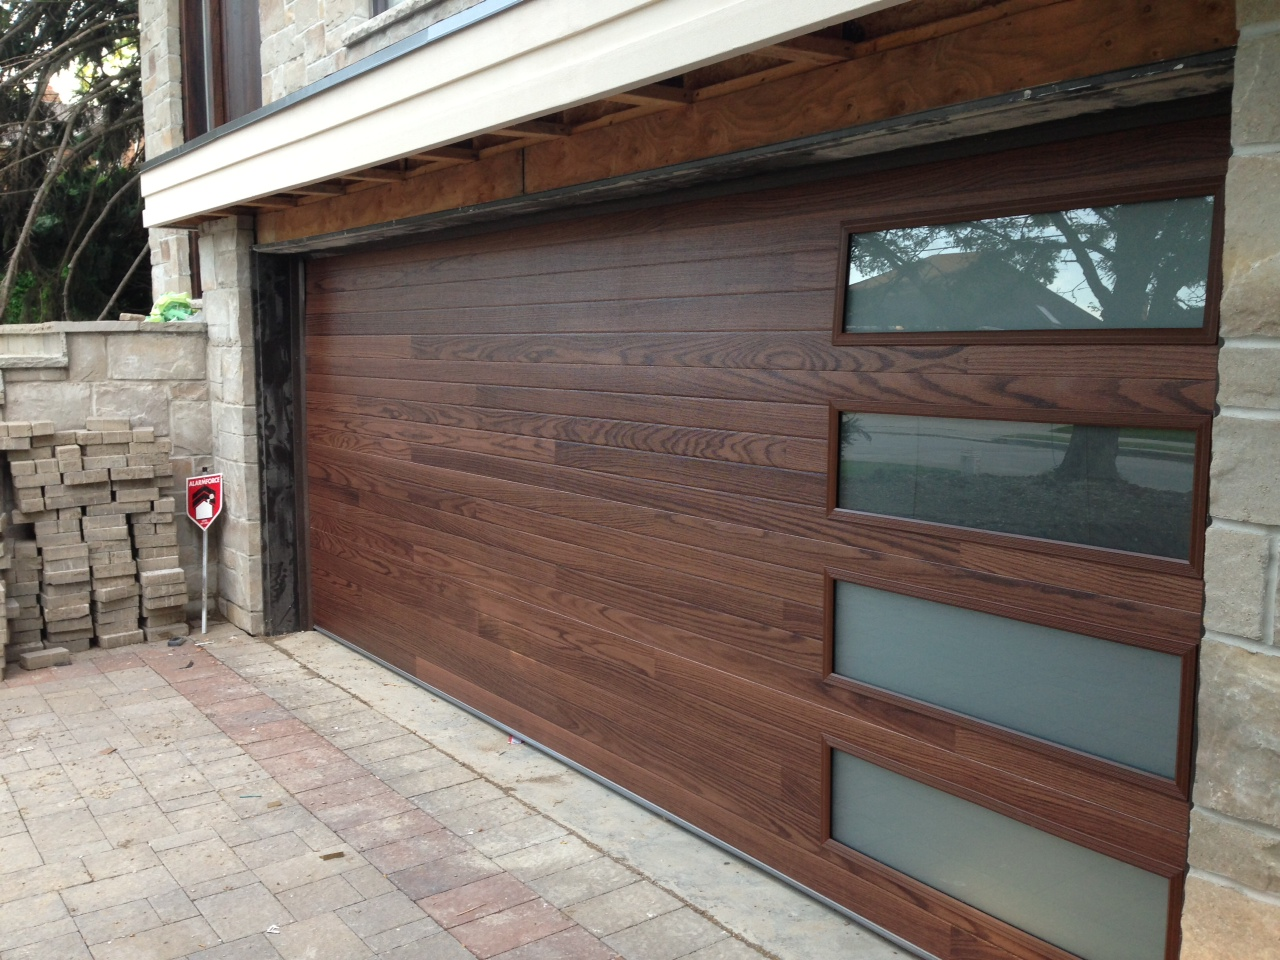 960 #66483E Contemporary Wood Doors Garage Doors And Gates 1280x960 Jpeg save image Stylish Garage Doors 37871280